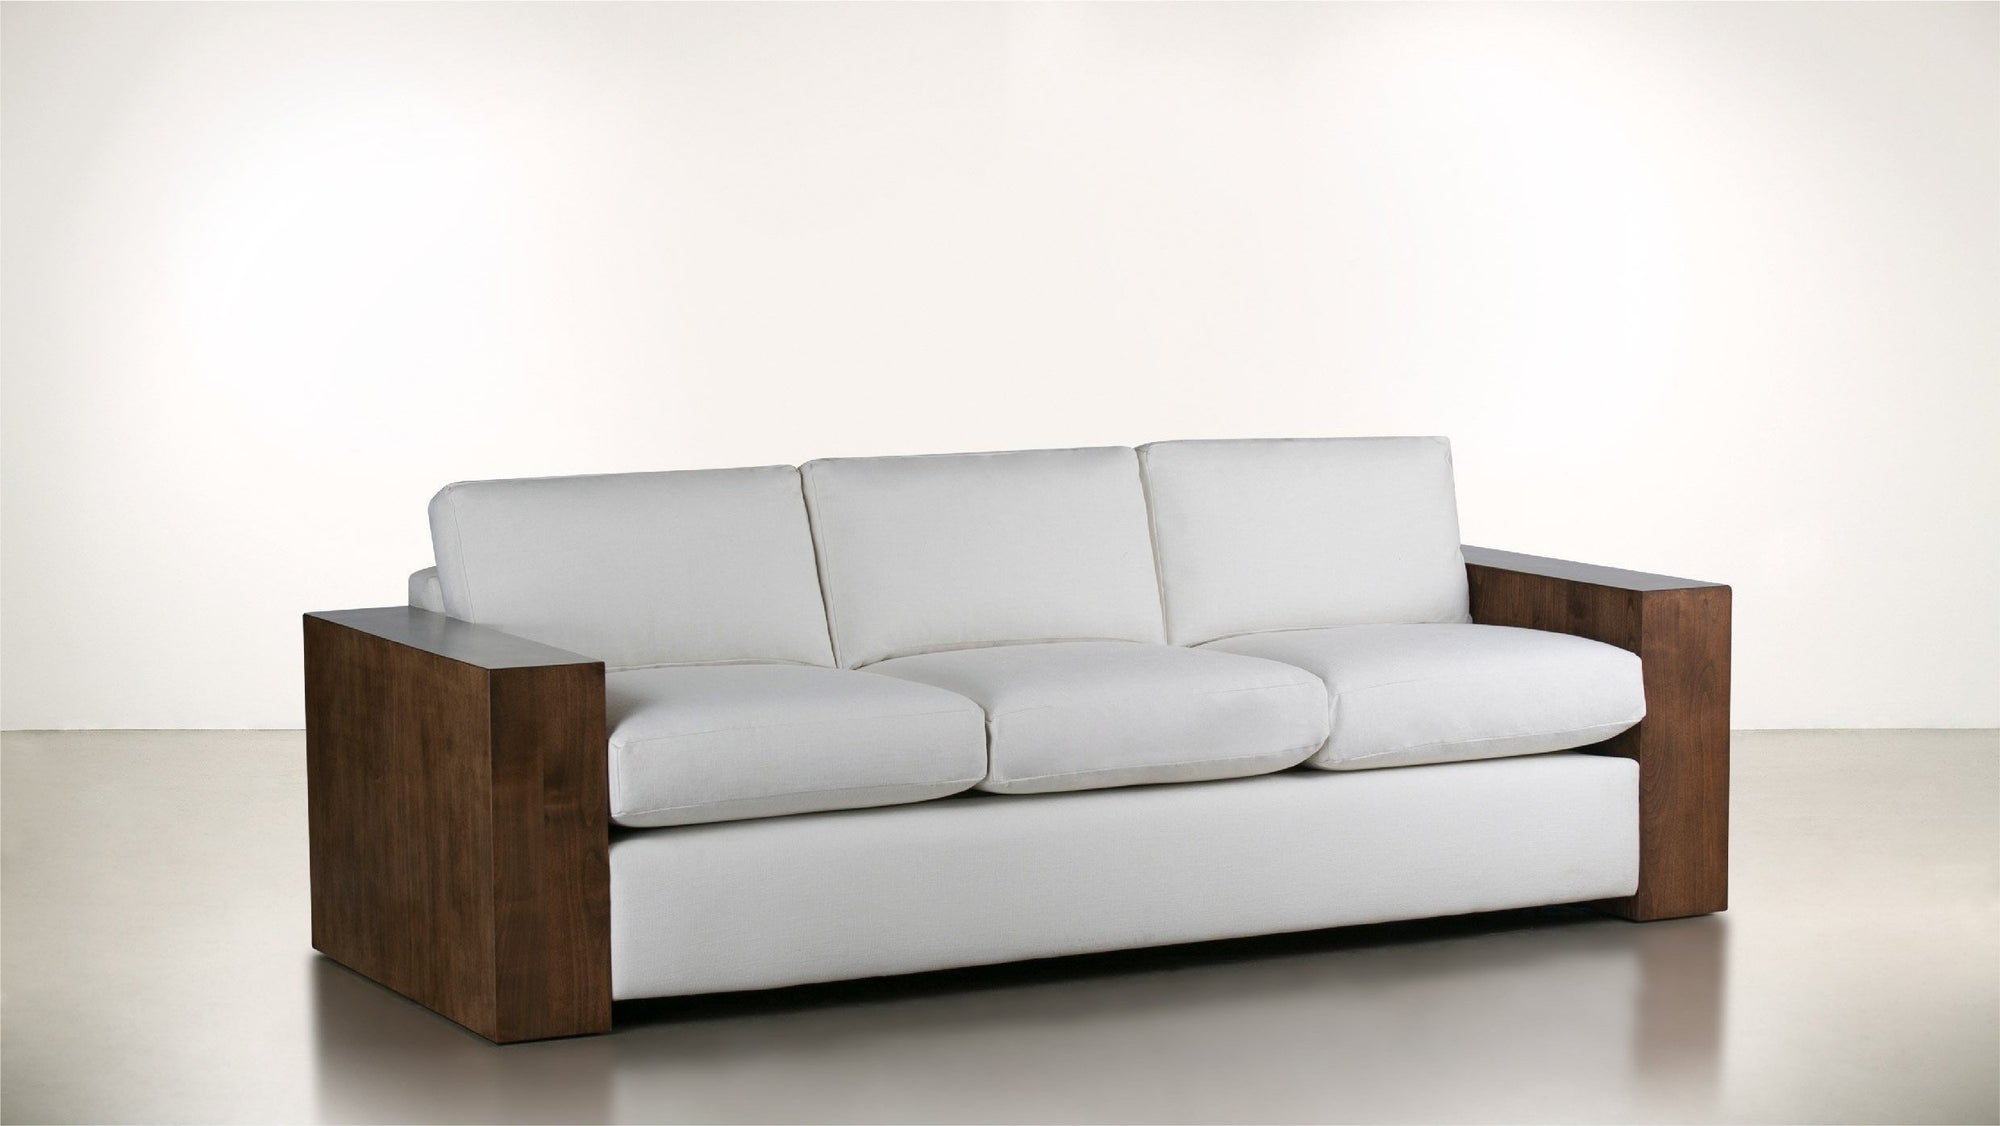 The Philosopher Sofa